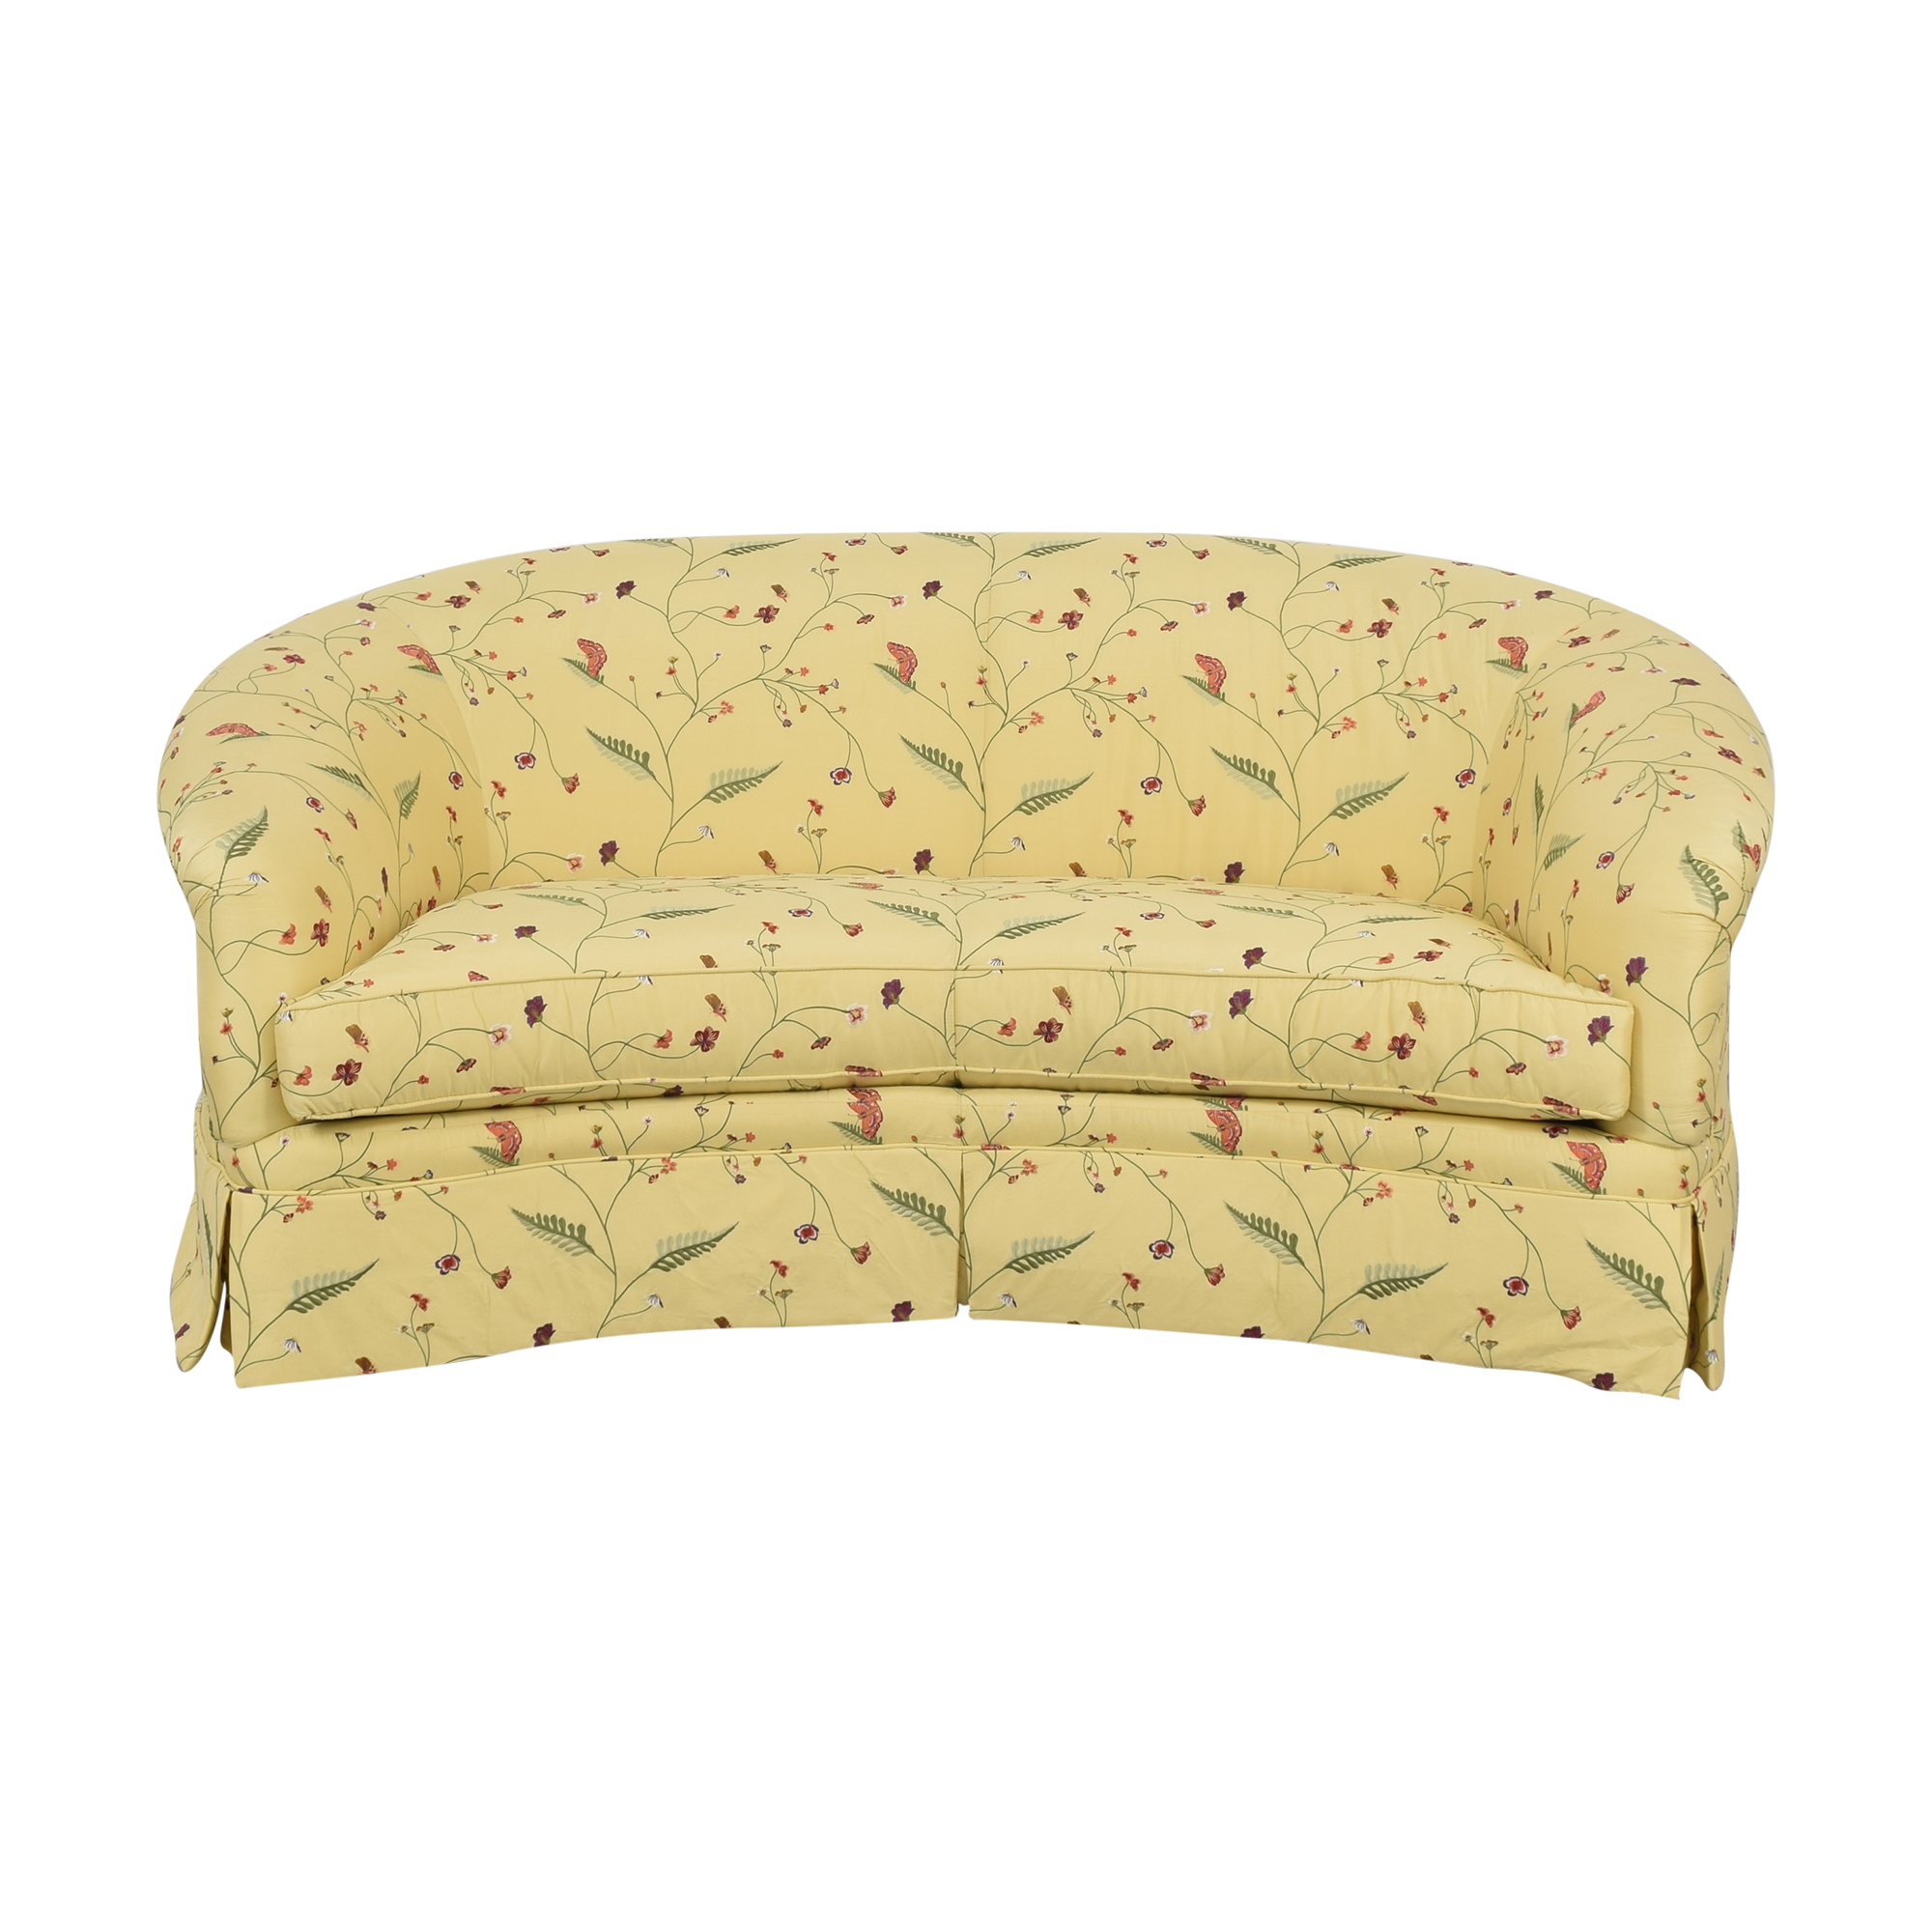 Drexel Heritage Drexel Heritage Chinoiserie Curved Sofa